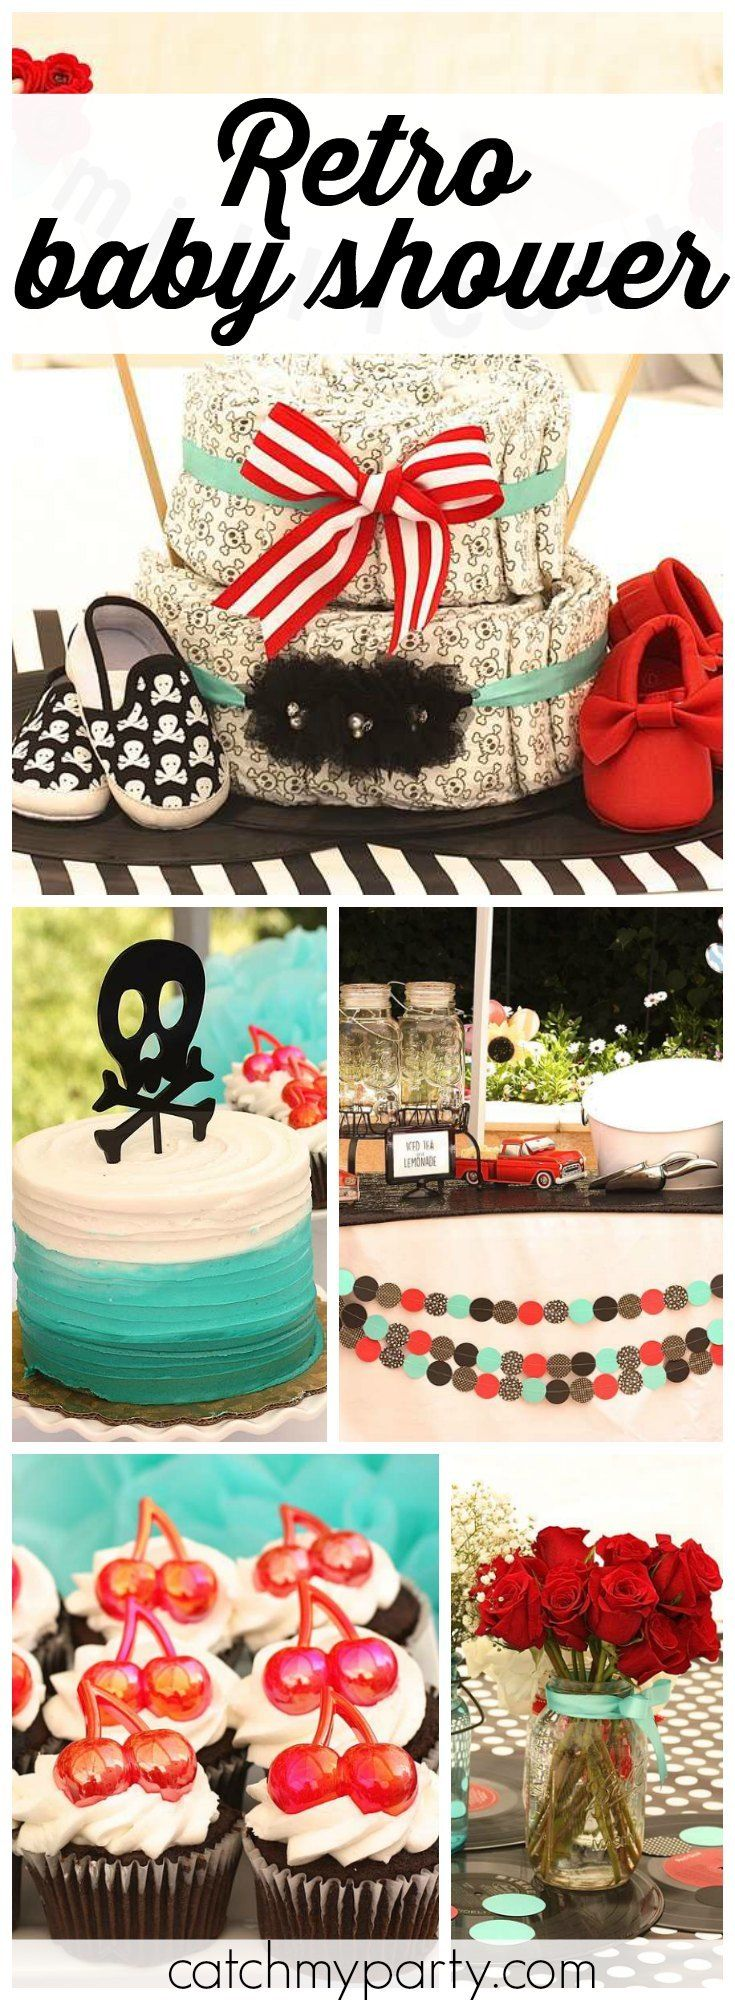 Retro rockabilly is the theme of this unique baby shower! See more party ideas at Catchmyparty.com!